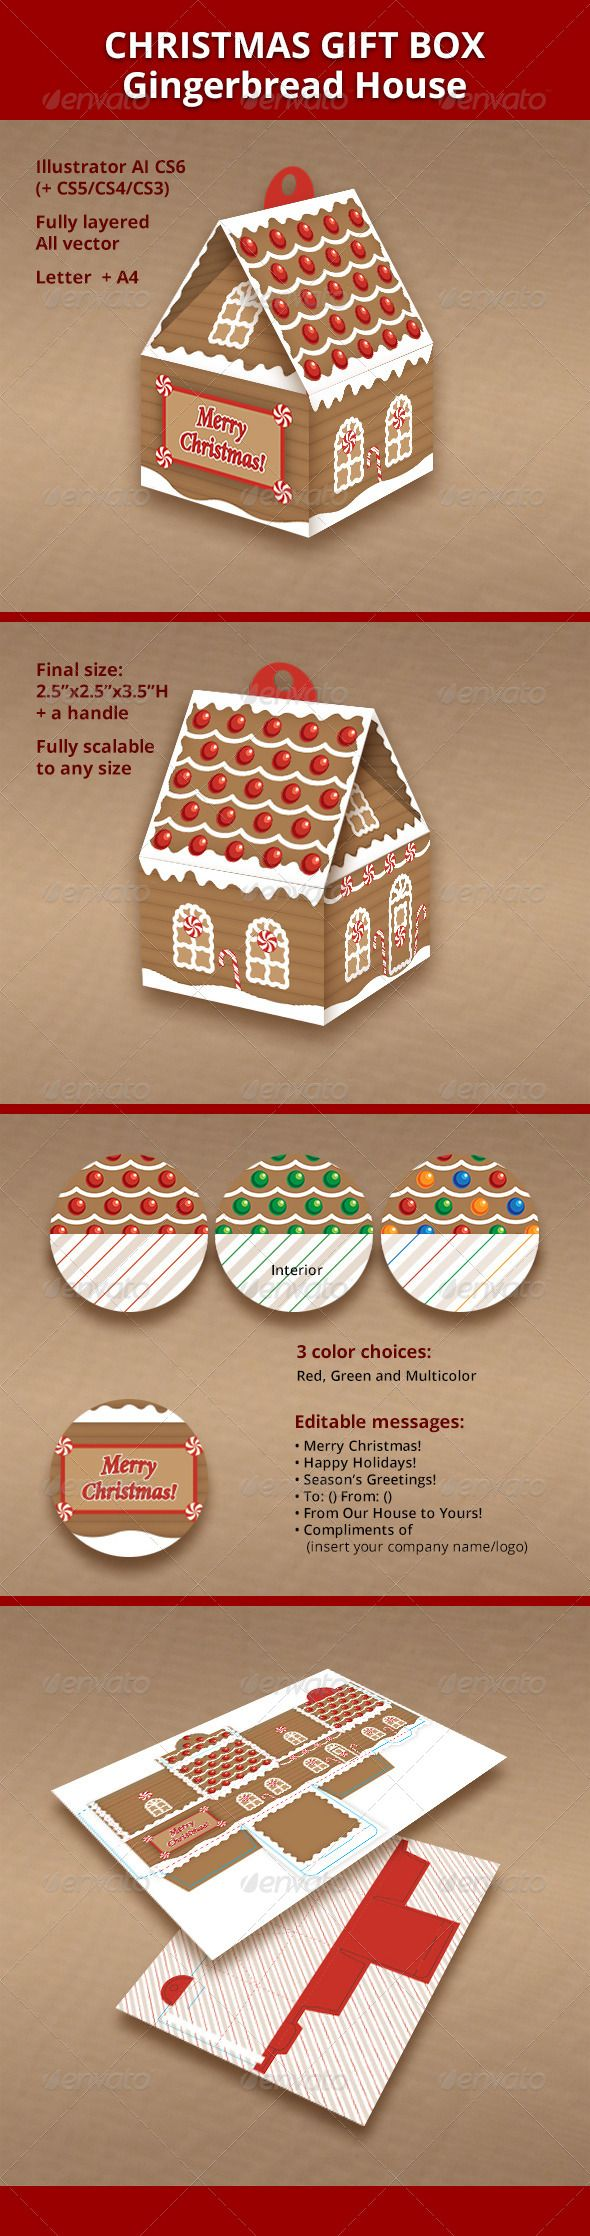 Gingerbread House Box Design on candy box, fireplace box, halloween box, biscotti box, tiramisu box, pig roast box, butterfly box, text box, cookie dough box, gumbo box, ornament box, church box, brownies box, panettone box, giveaway box, icing box, ginger box, cupcake house box, fudge box, rose box,